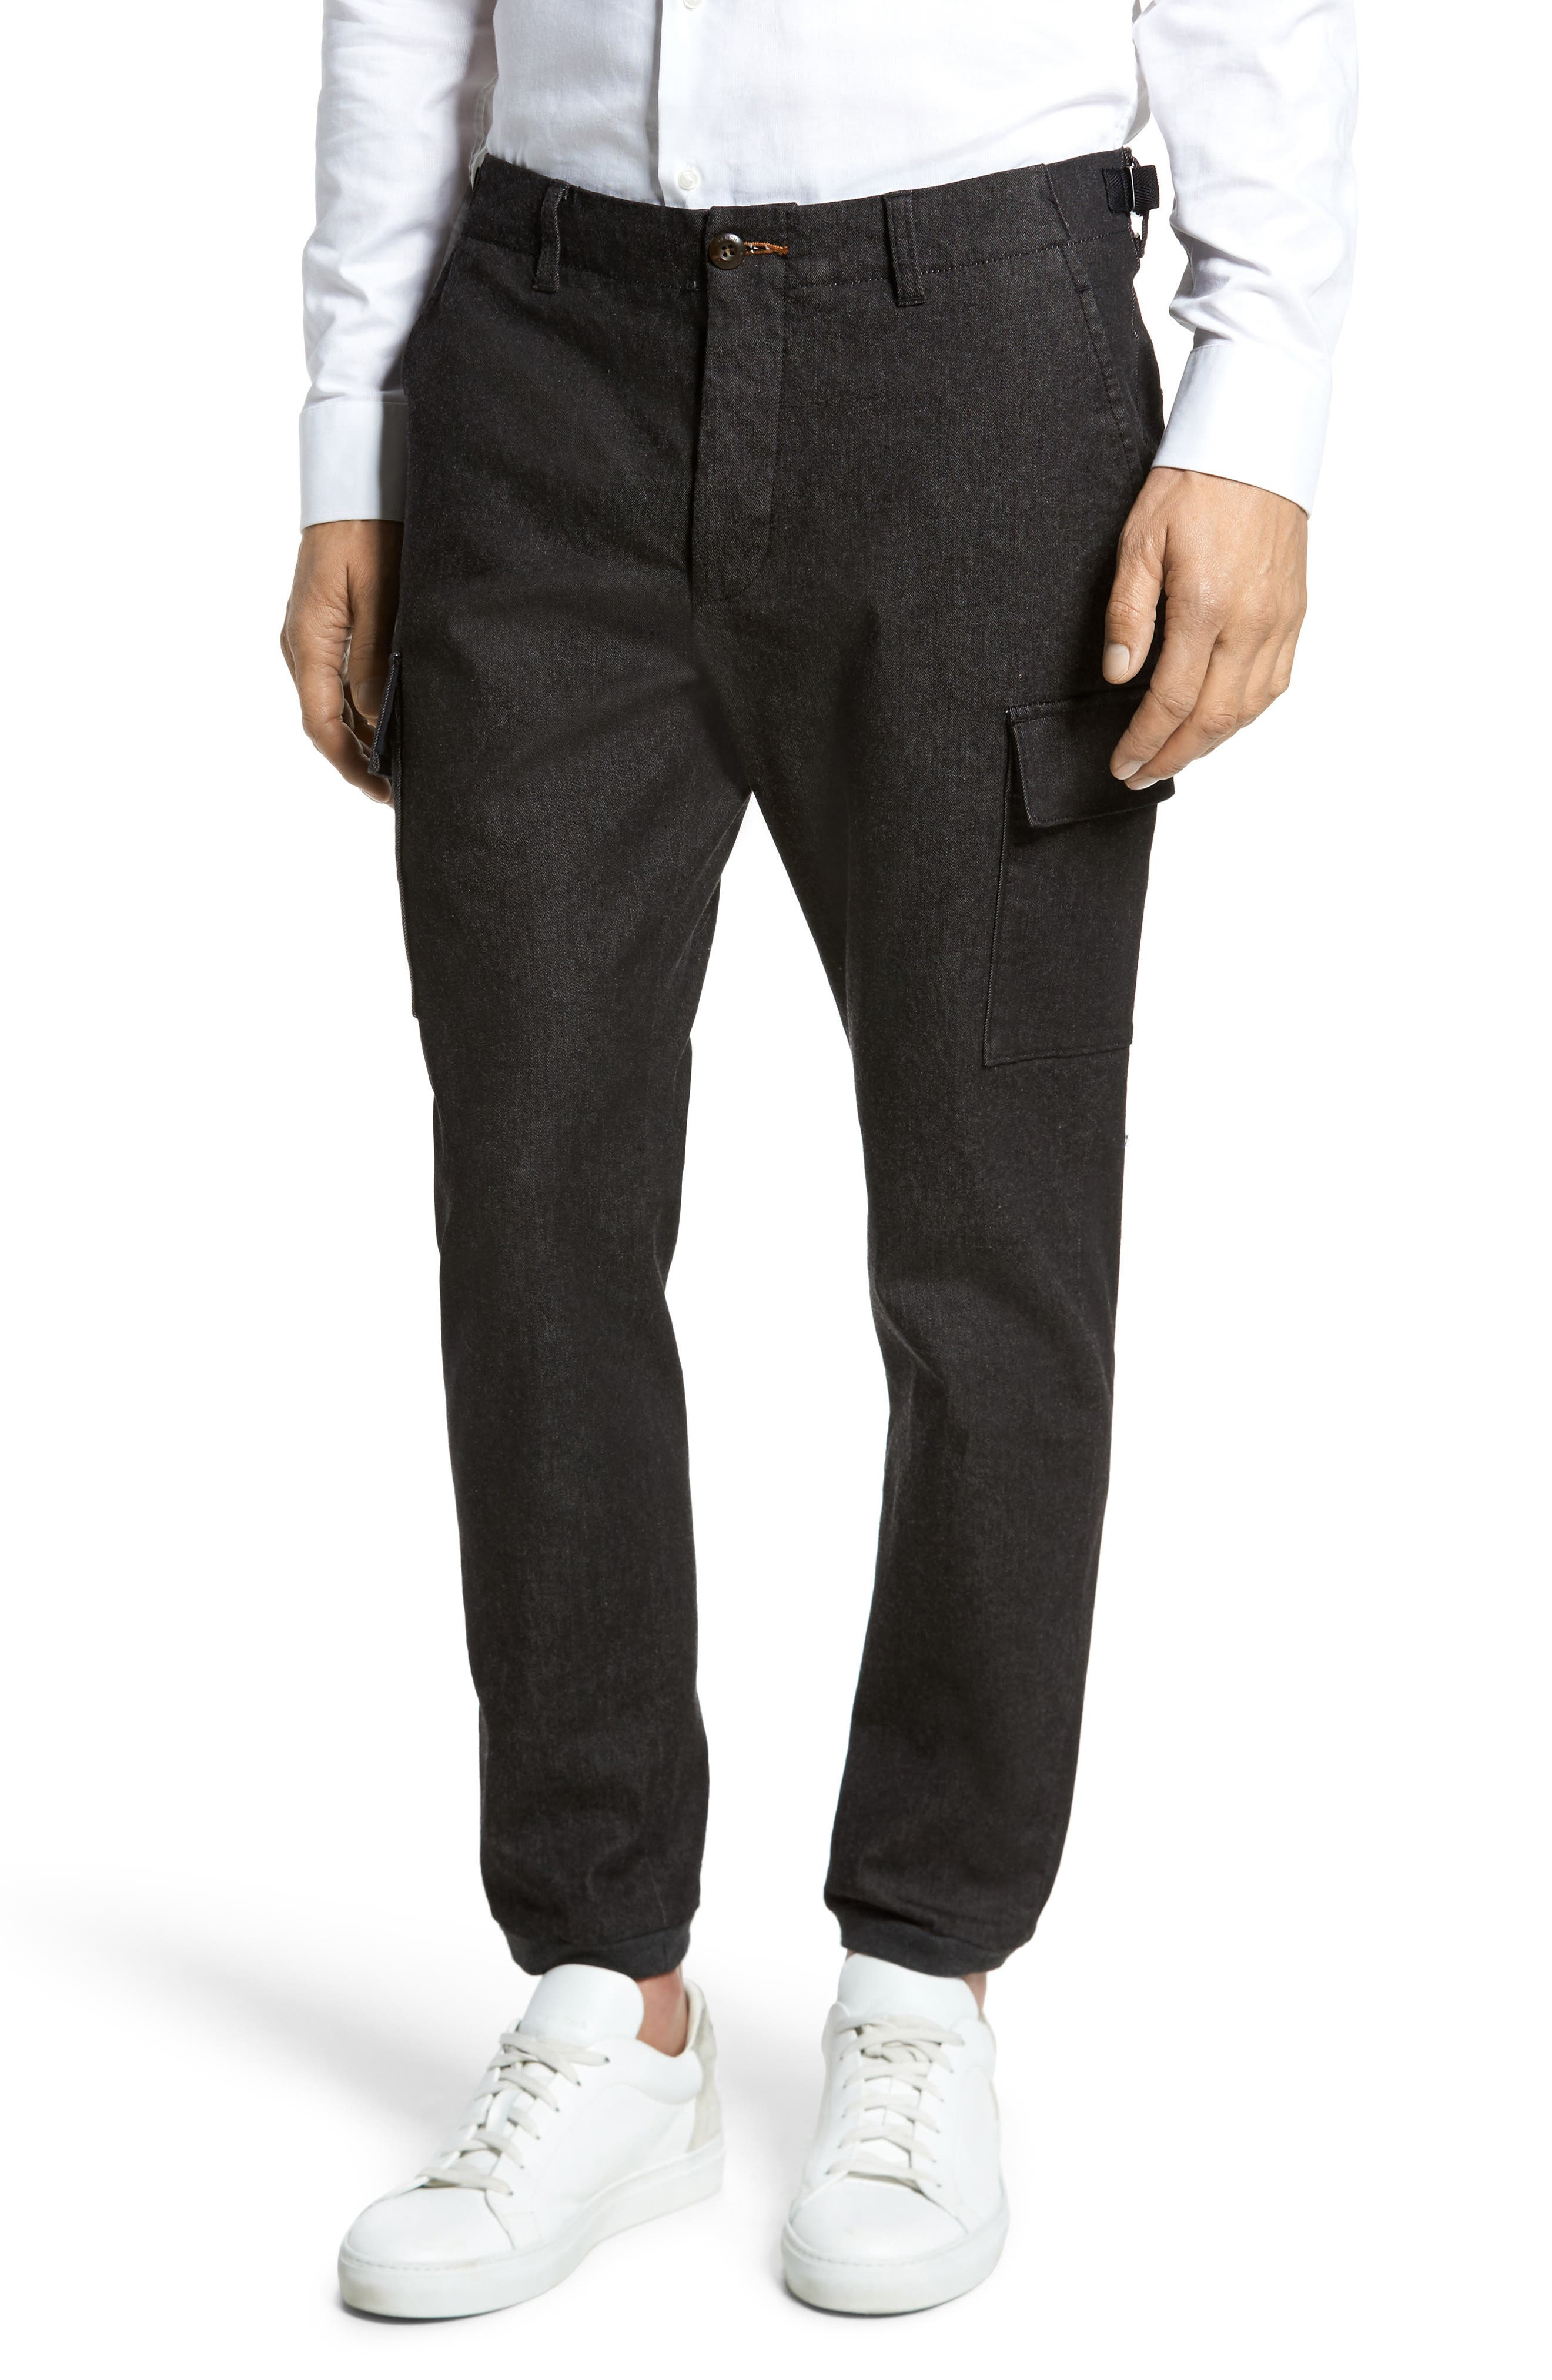 Brushed Stretch Twill Pants,                         Main,                         color, 011